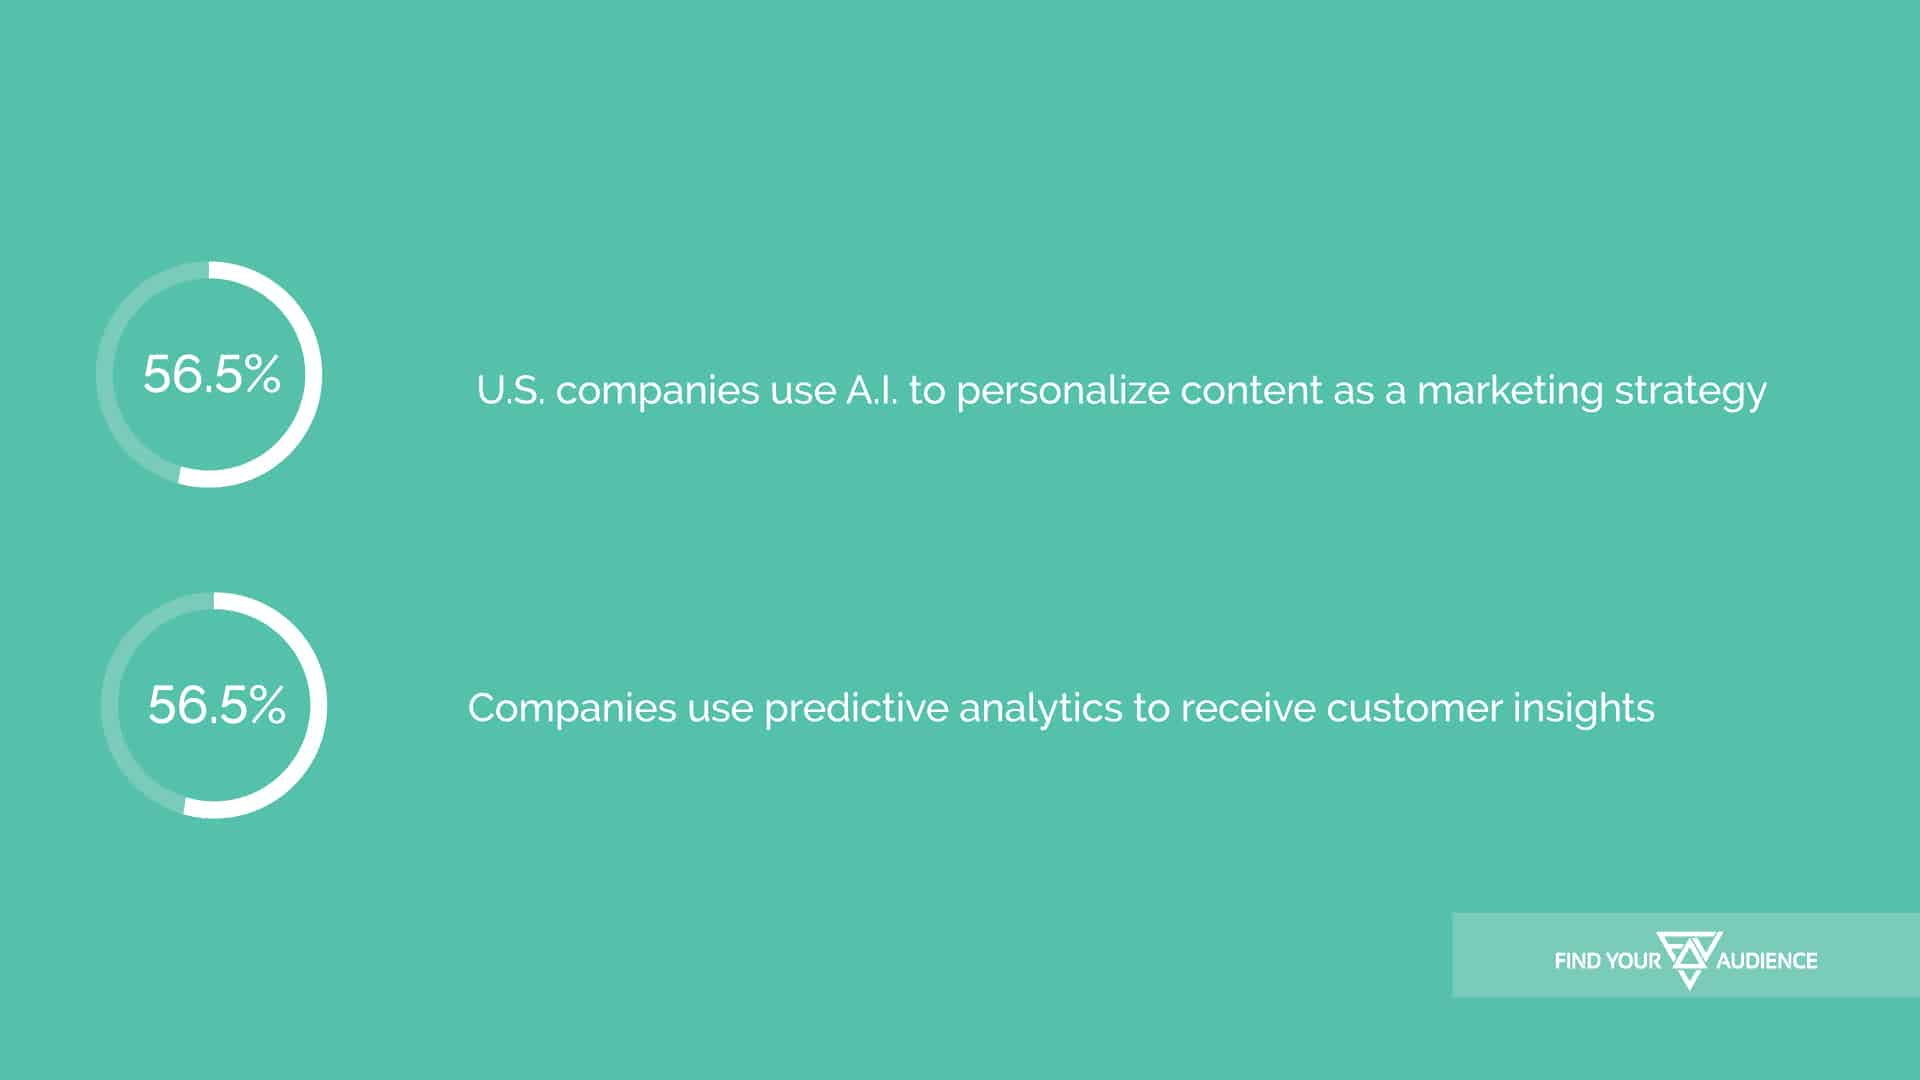 According to the research, 56.5% of U.S. companies are using A.I. to personalize content as a marketing strategy. At the same time, 56.5% of companies are using predictive analytics to receive customer insights.